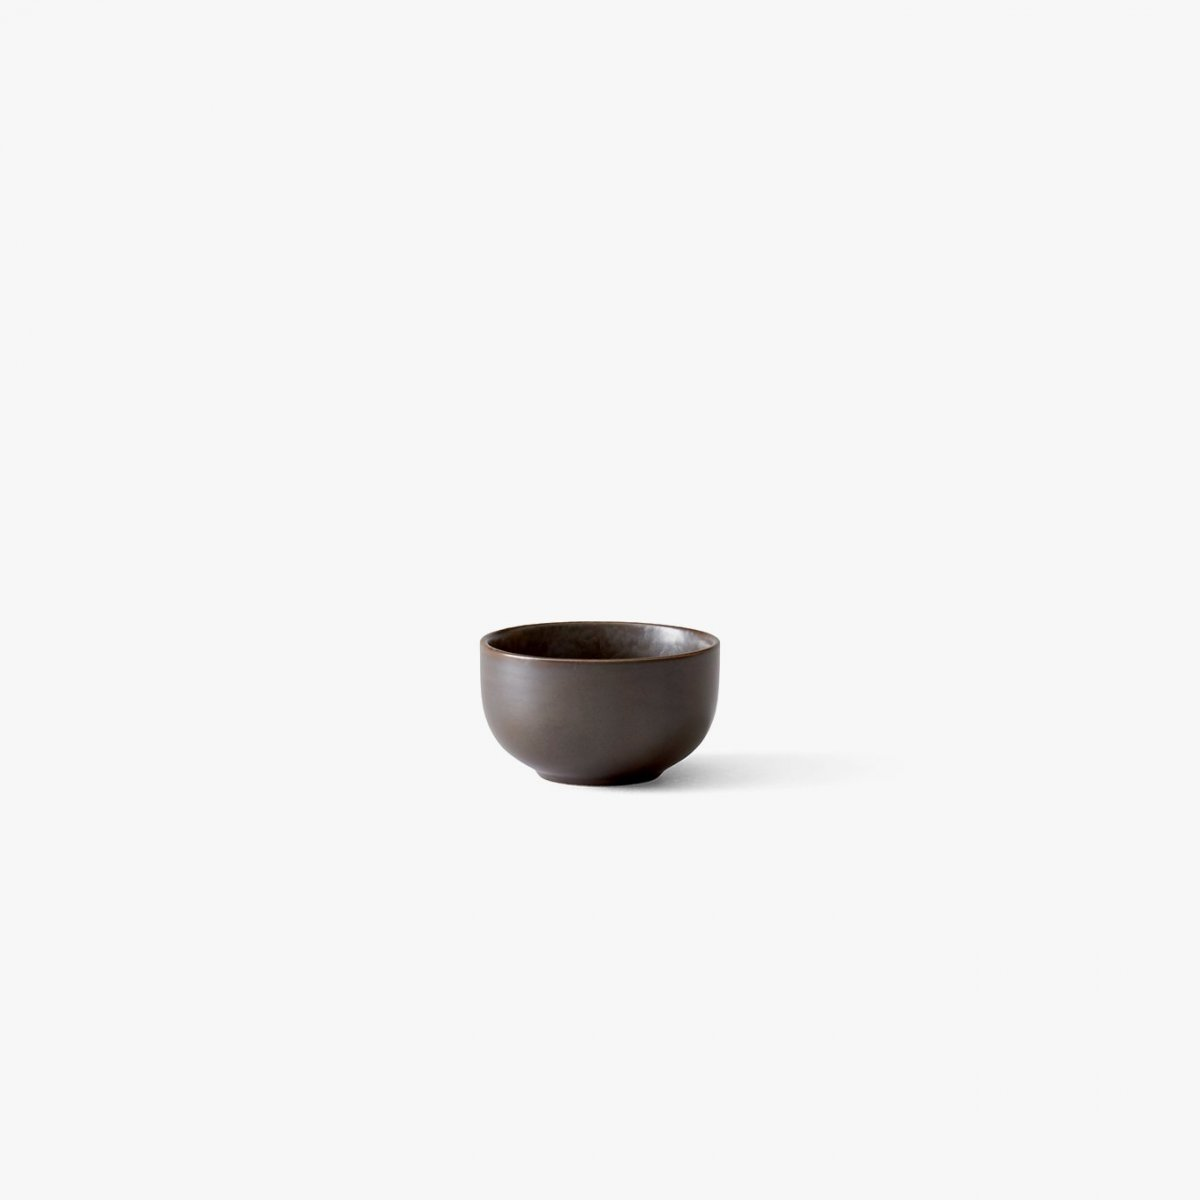 New Norm Bowl, Ø 7.5 cm, dark glazed.